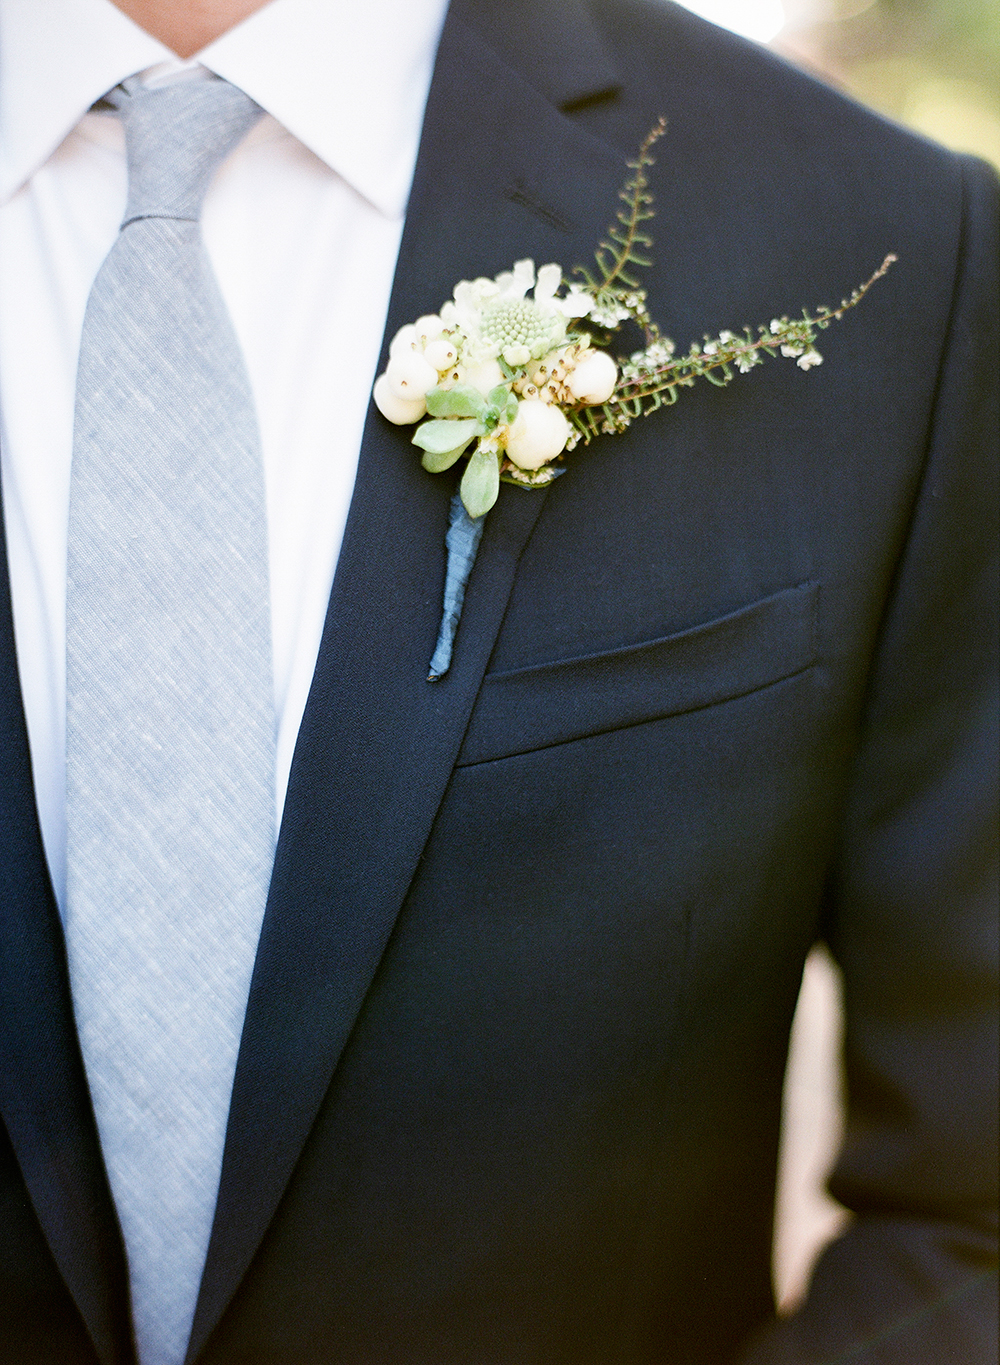 grooms boutonniere - photo by Lisa Blume Photography http://ruffledblog.com/cyanotype-inspired-wedding-ideas